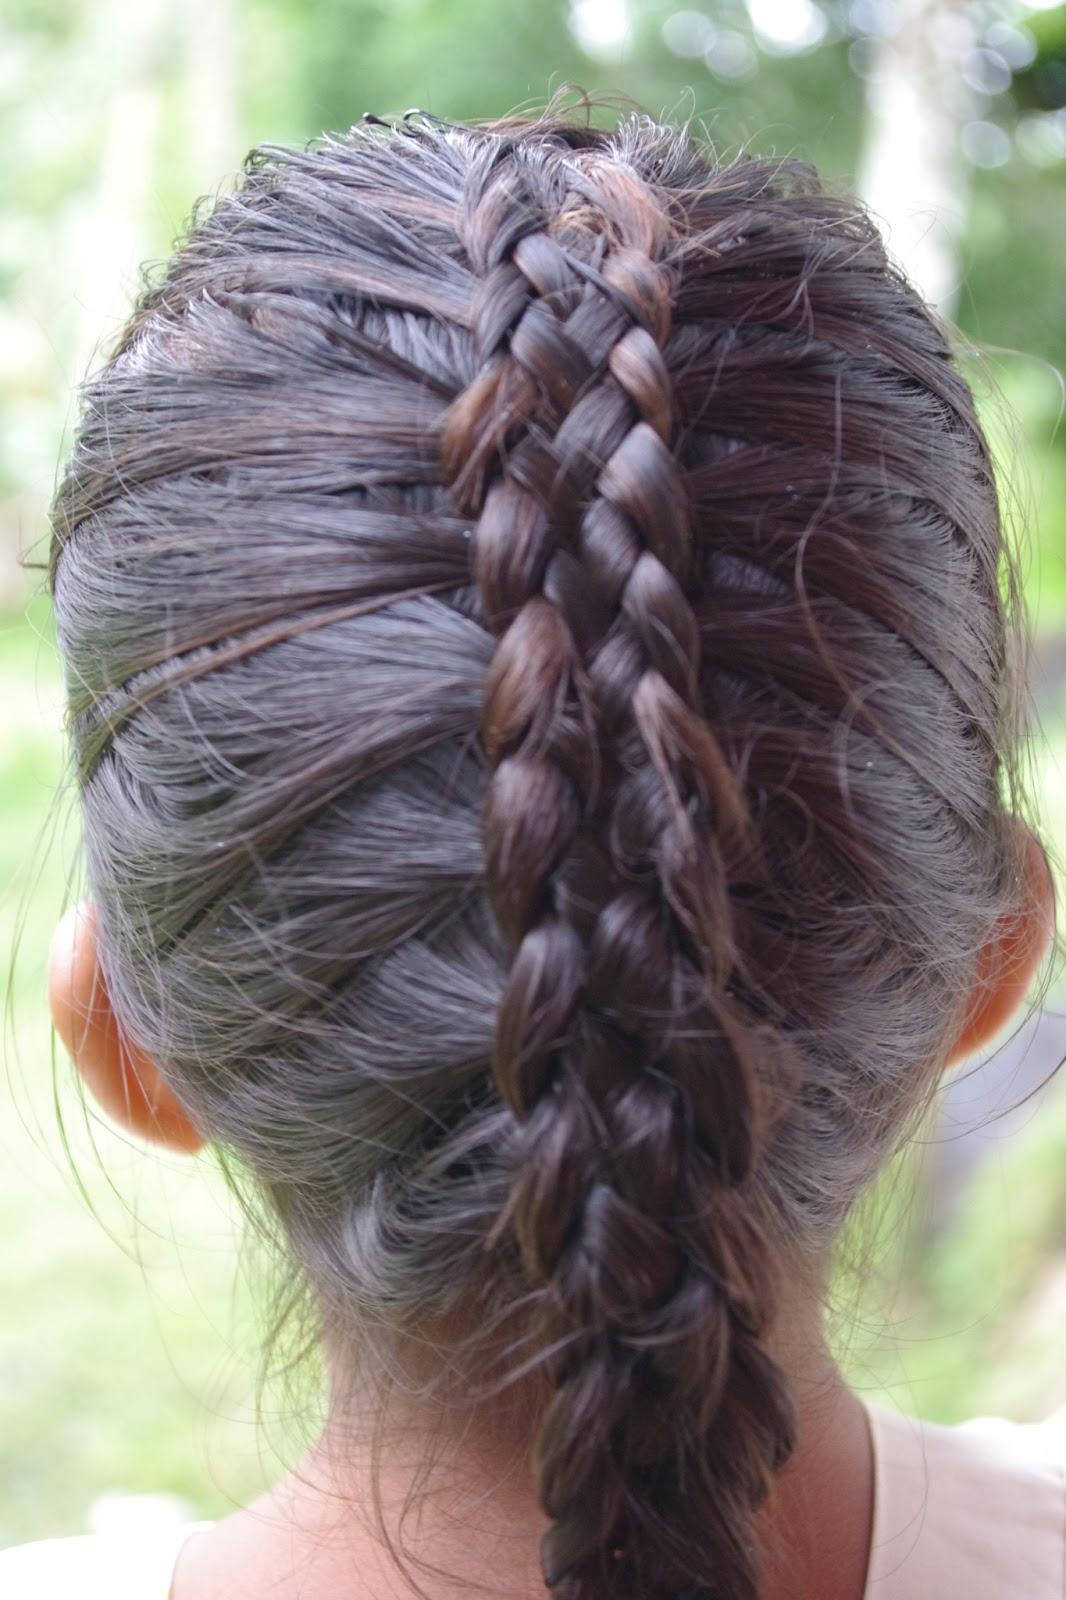 Micronesian Girl Two Cute Braided Hairstyles For Big Sister And